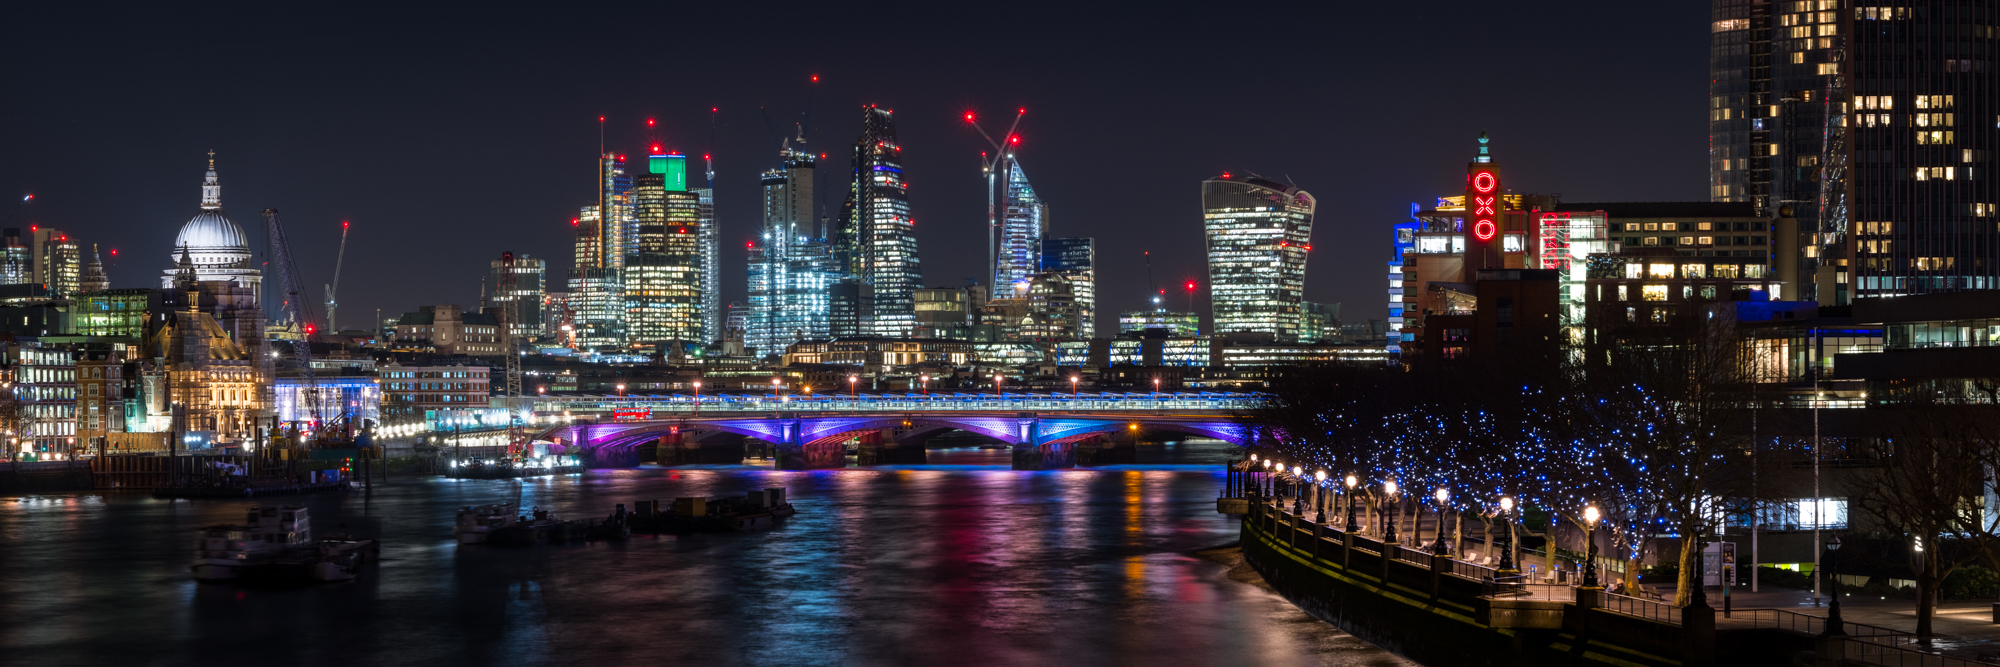 London panoramic photo of London at night by Trevor Sherwin